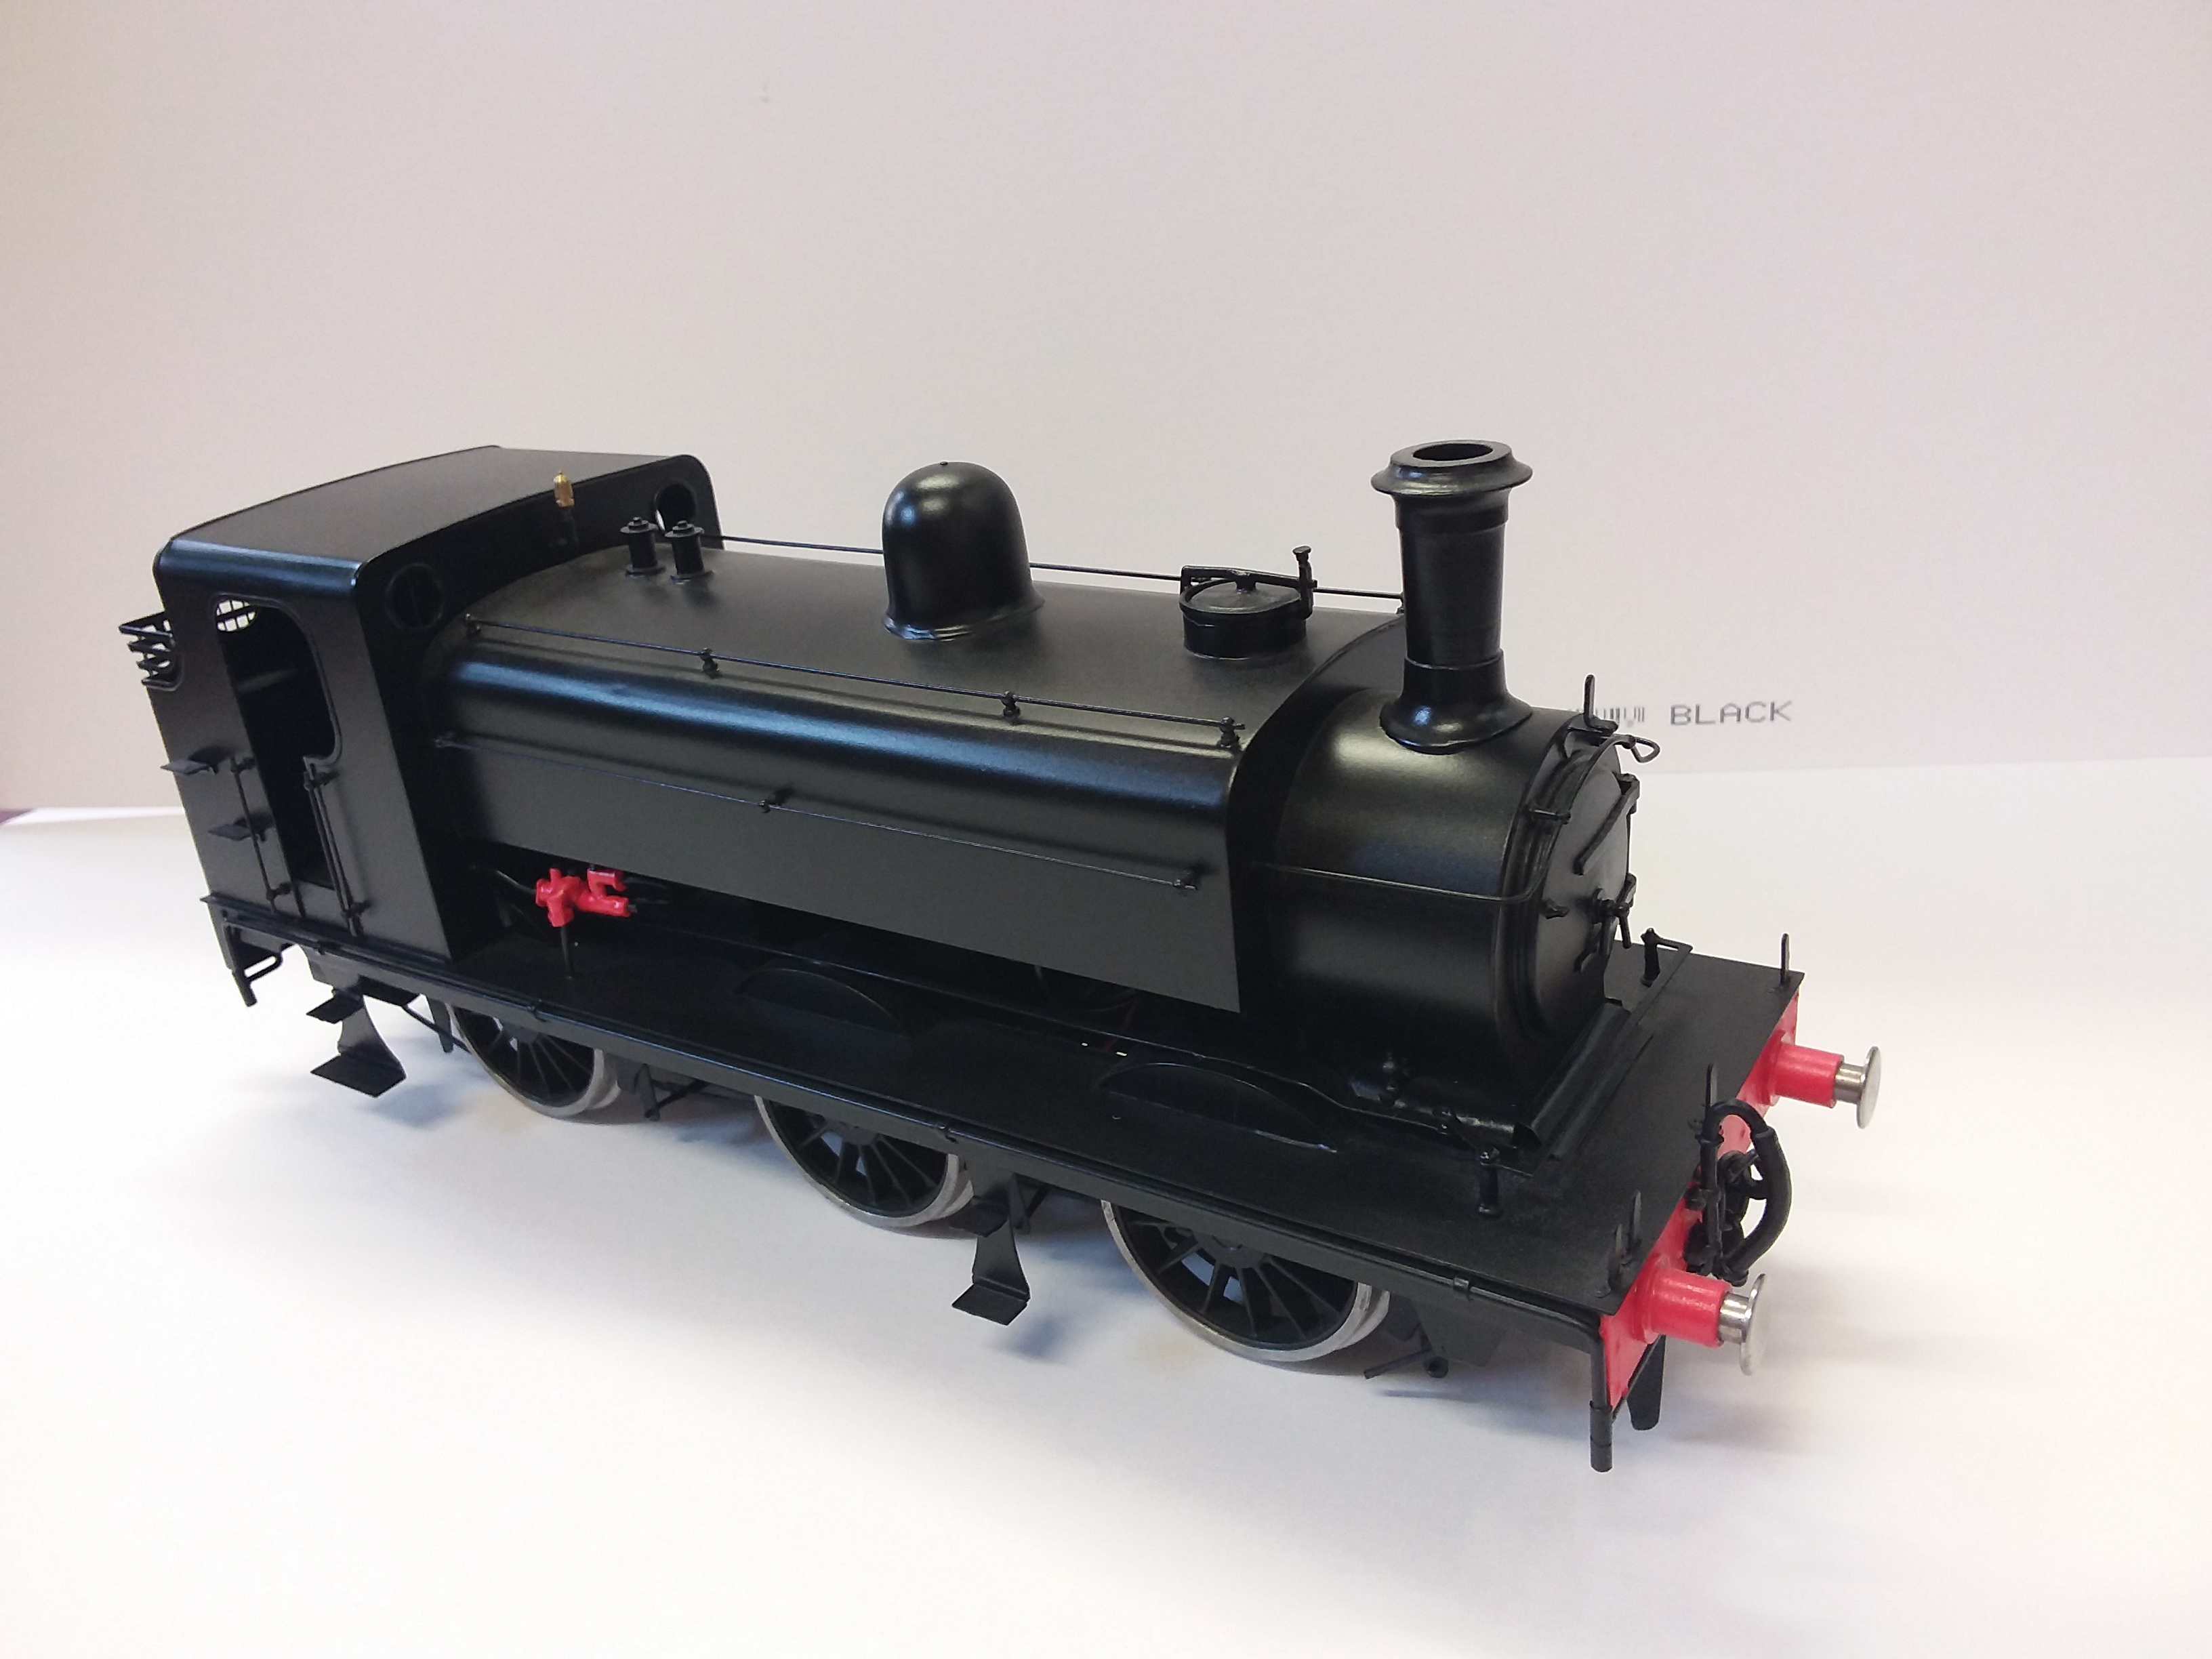 Kit built J52 unlettered test run only well build model